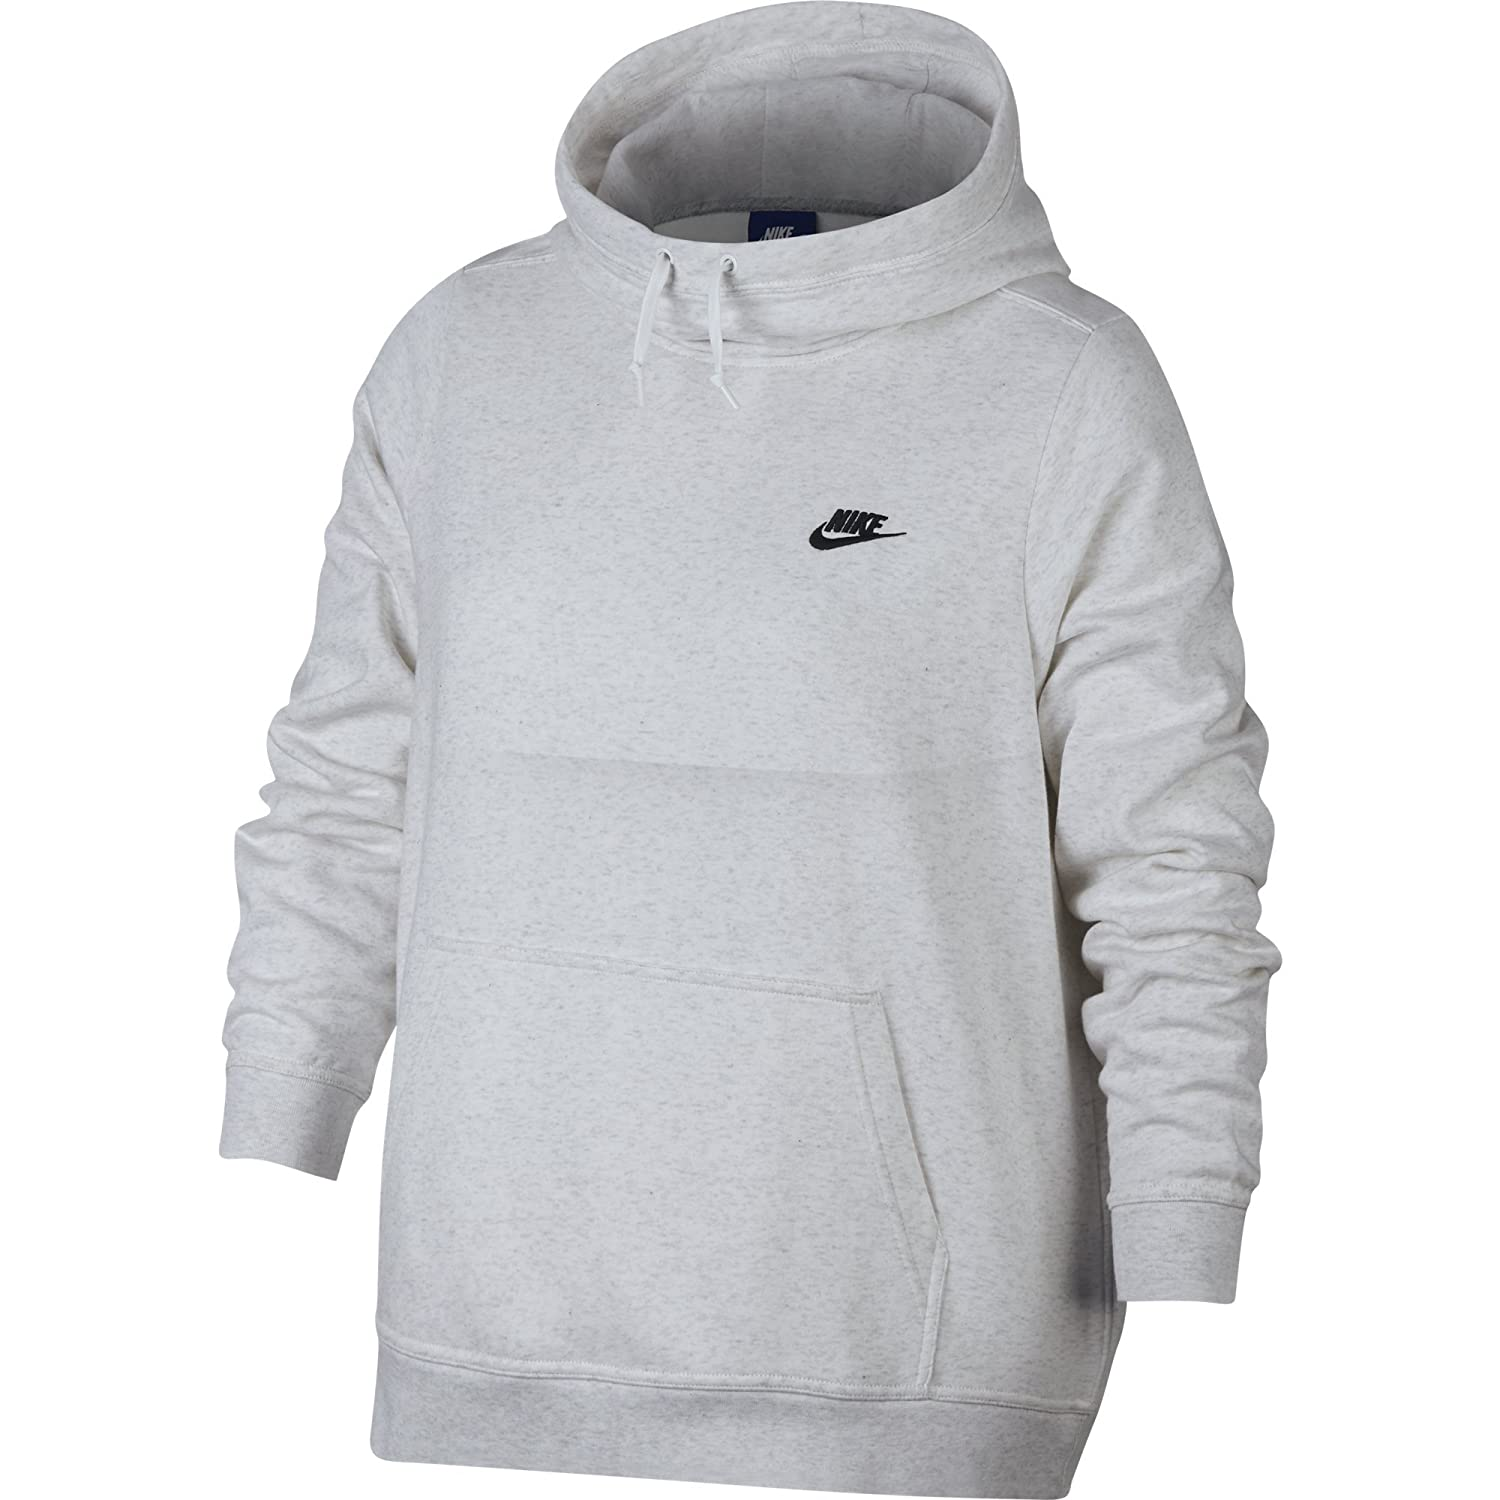 baf9940a4160 Amazon.com  NIKE Sportswear Women s Plus Club Funnel-Neck Hoodie  Sports    Outdoors